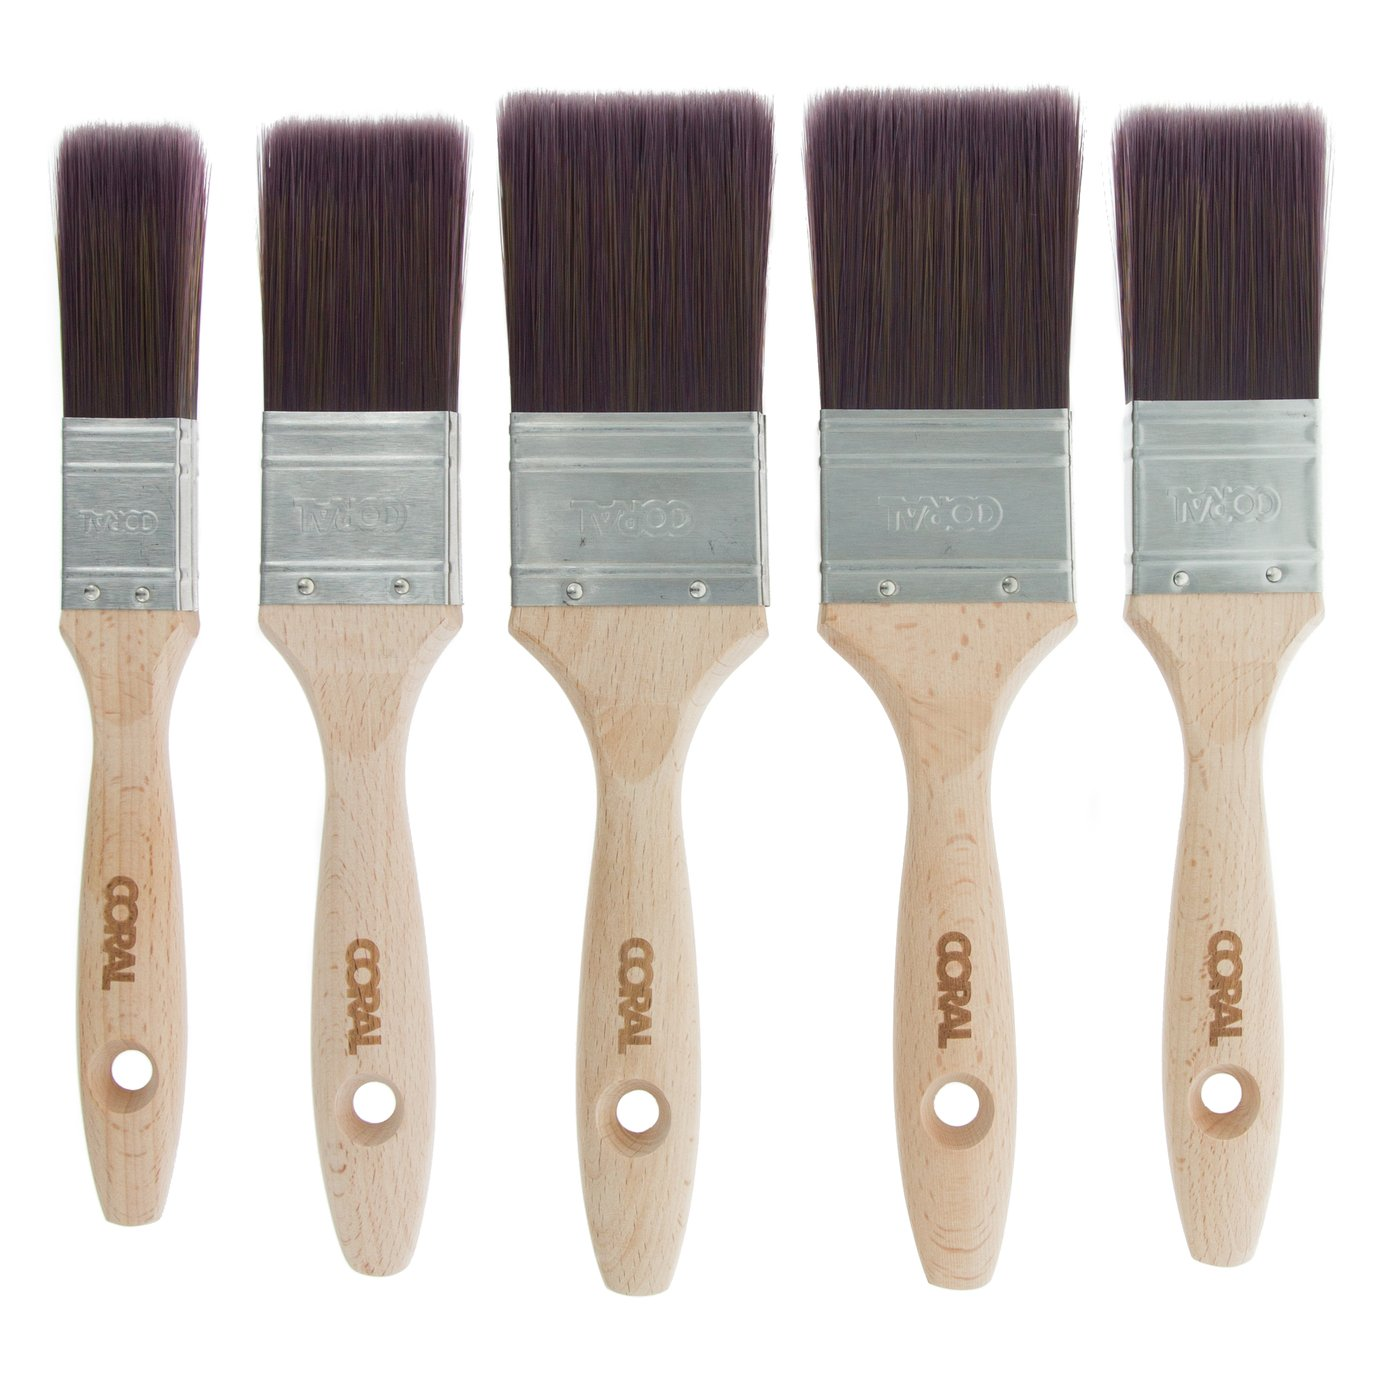 Coral Aspire Paint Brush - Set of 5